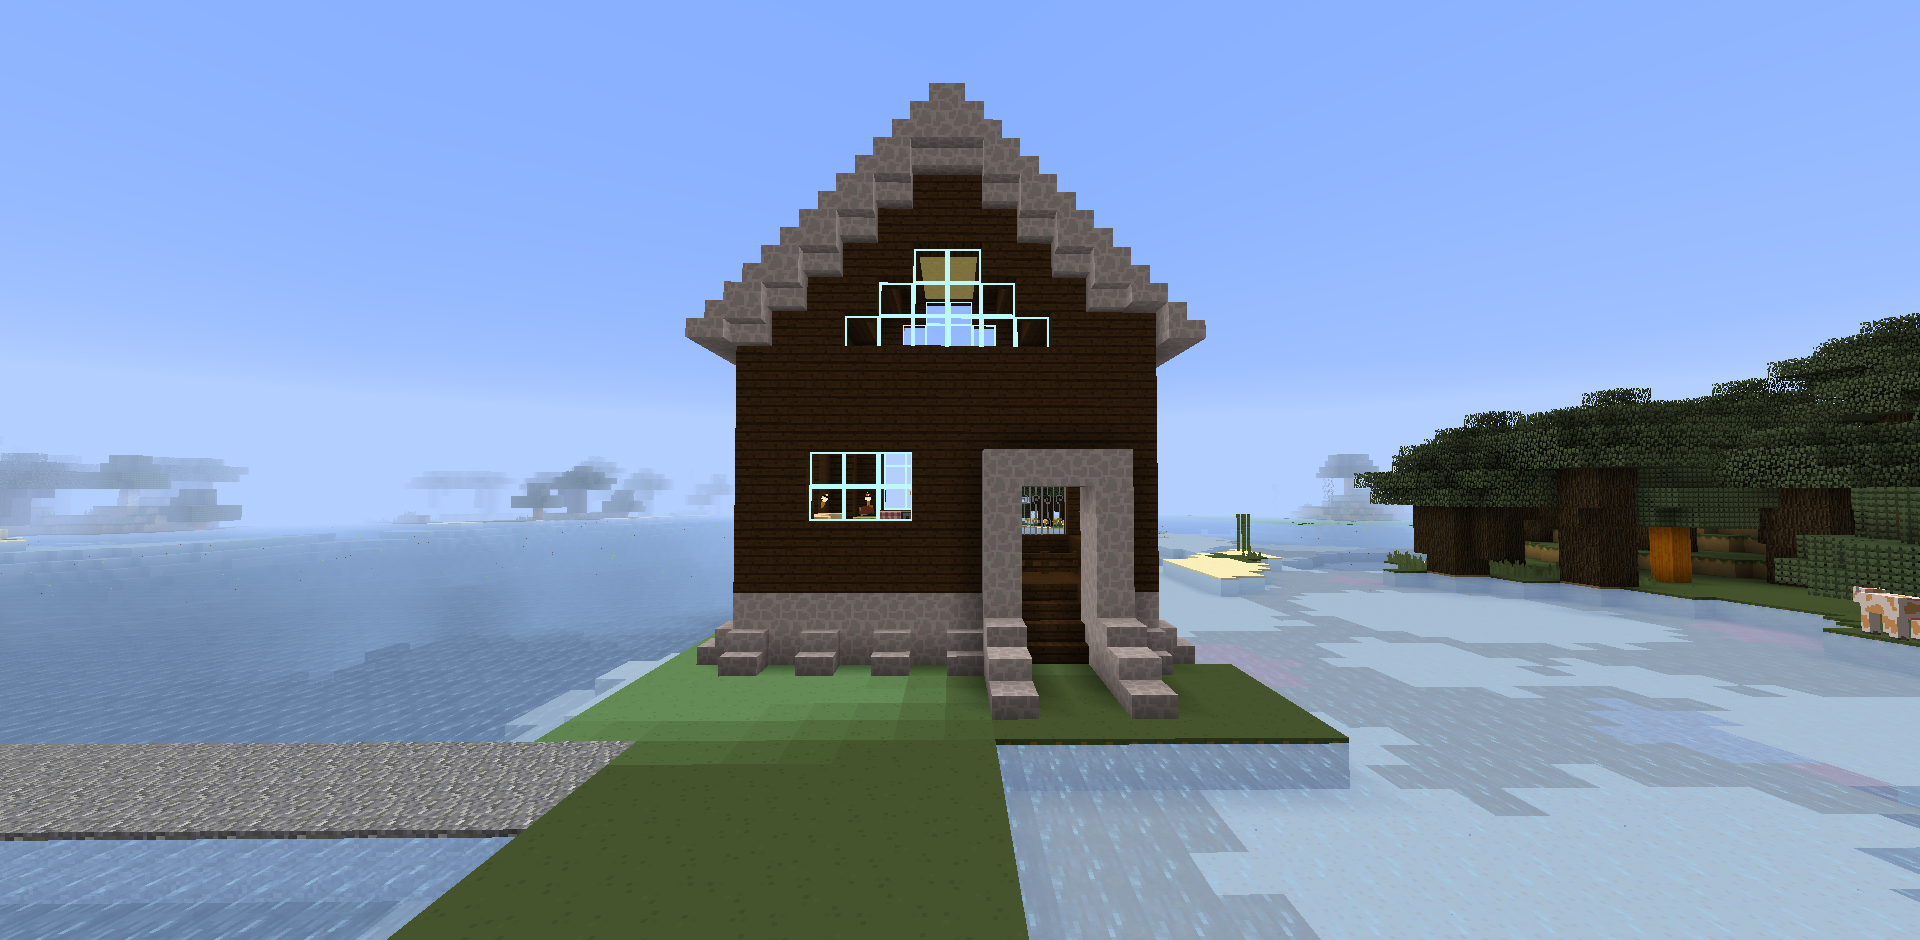 Minecraft houses creative mode harbor master house creative mode